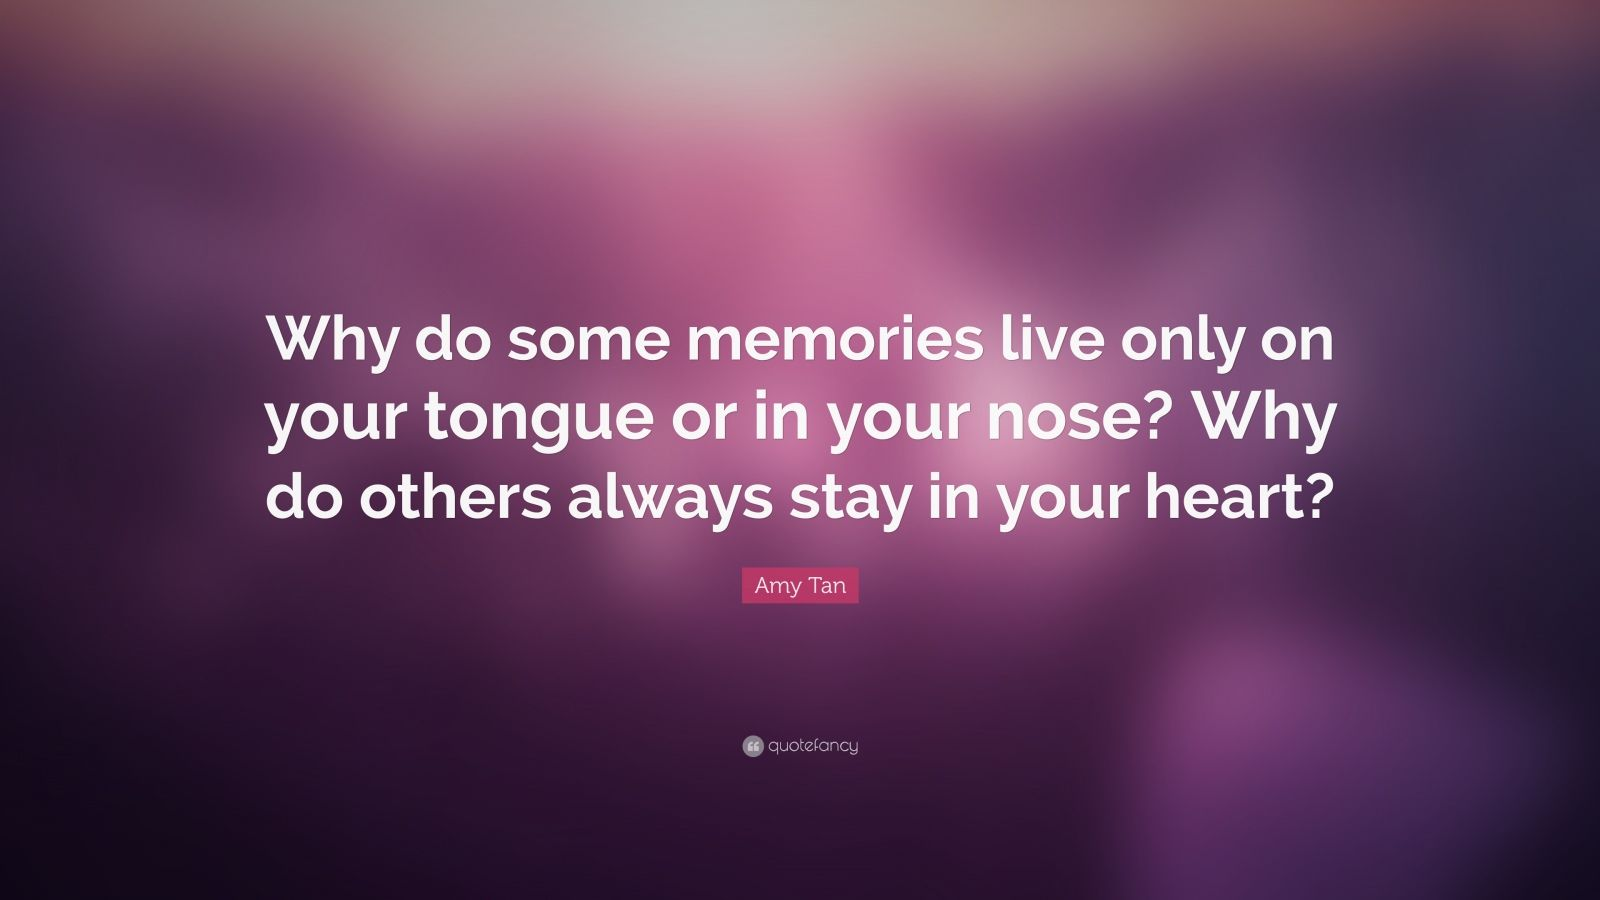 mother tongue amy tan full text amy tan academy of achievement amy  amy tan quotes quotefancy amy tan quote why do some memories live only on your tongue